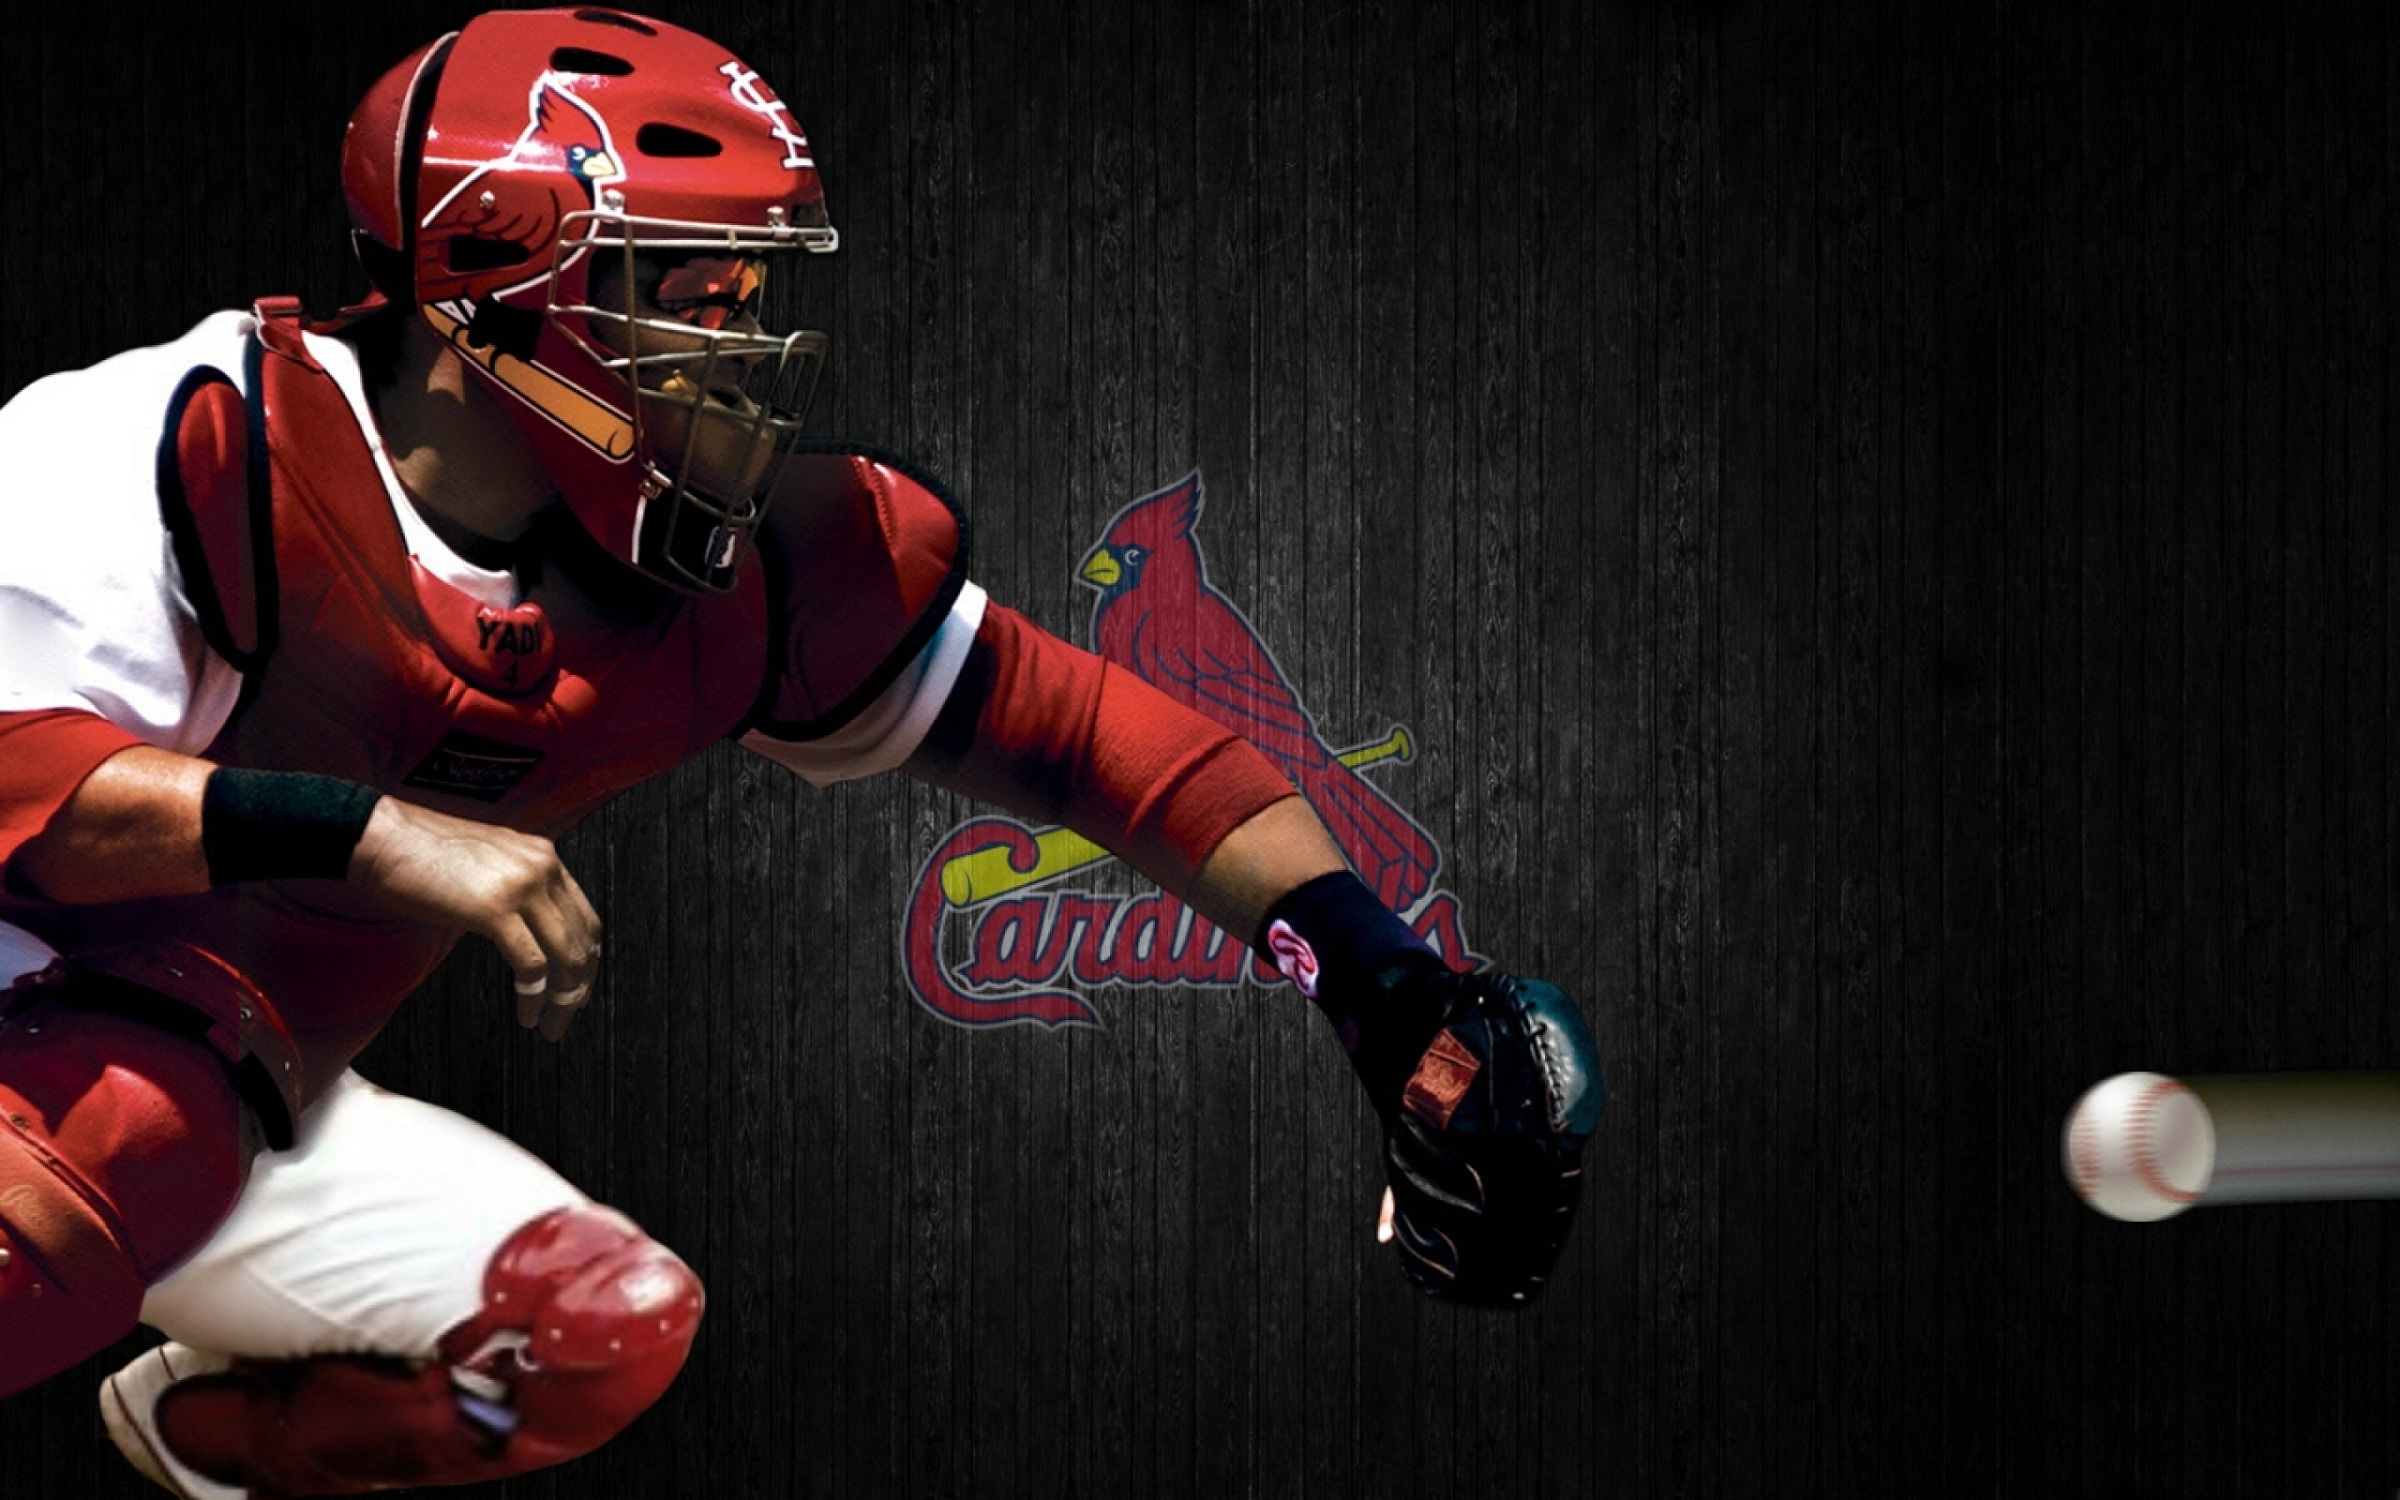 Cardinals Baseball Team HD Wallpaper Background Images 2400x1500